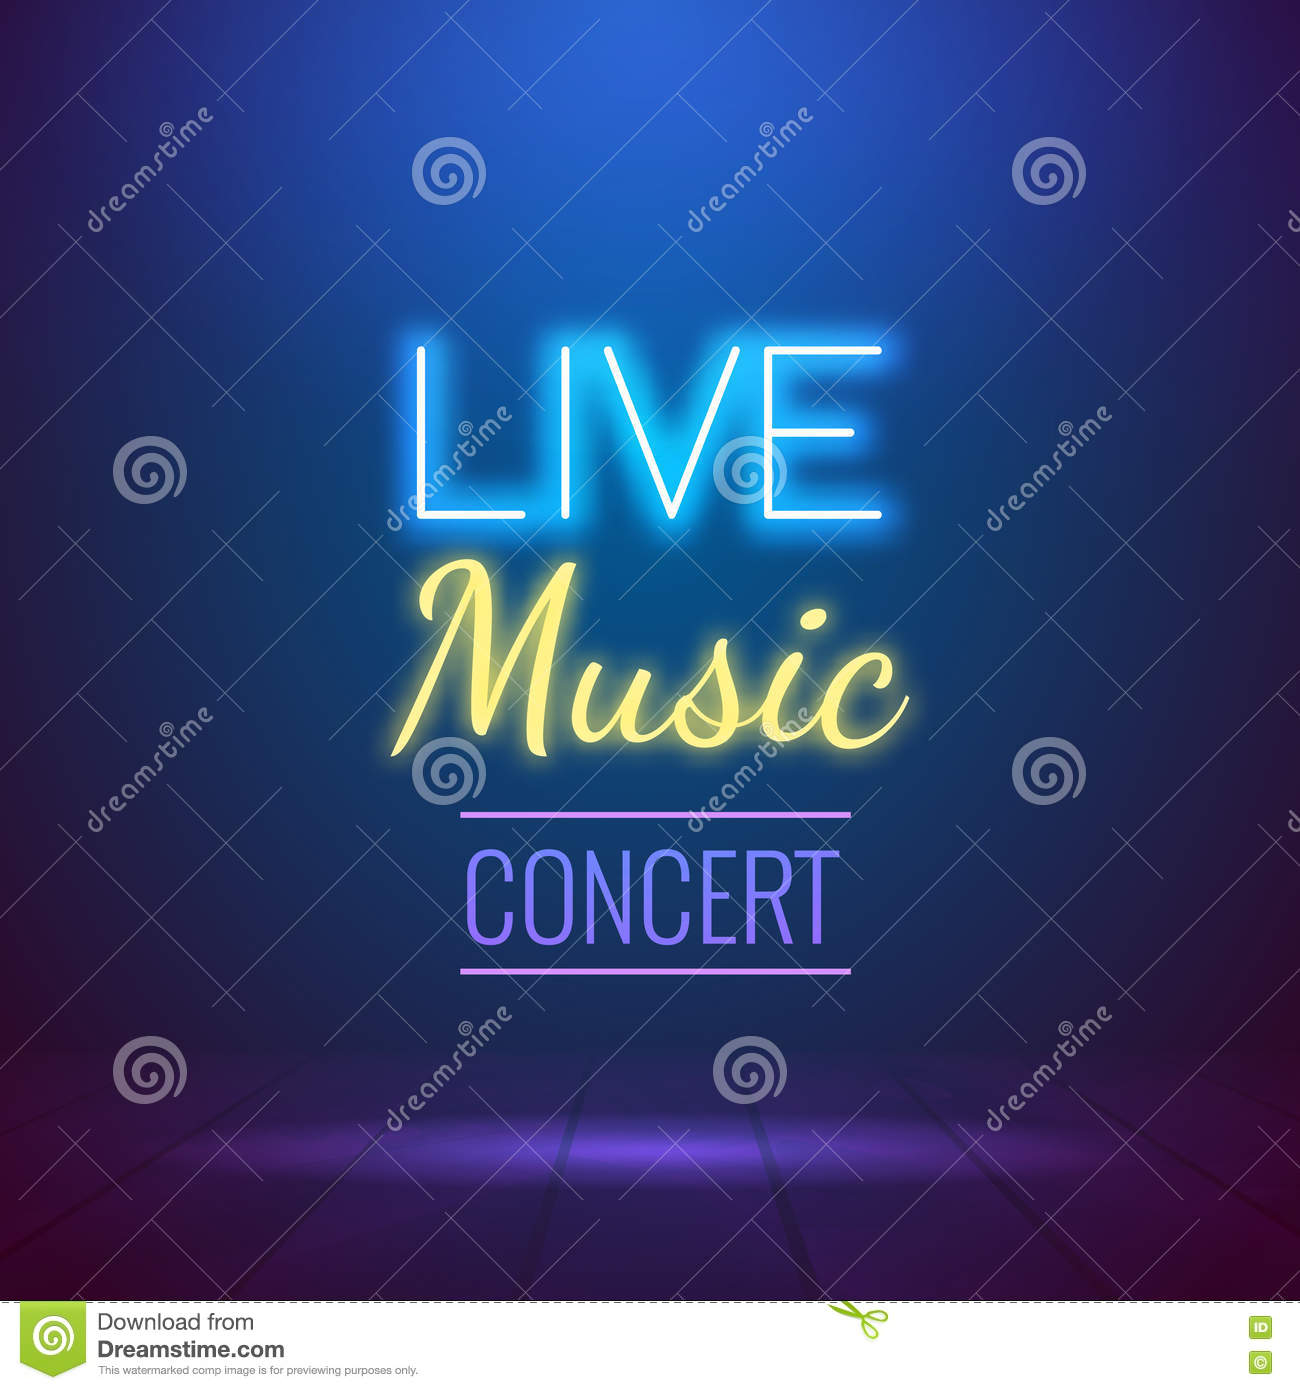 neon live music concert acoustic party poster background template, Modern powerpoint